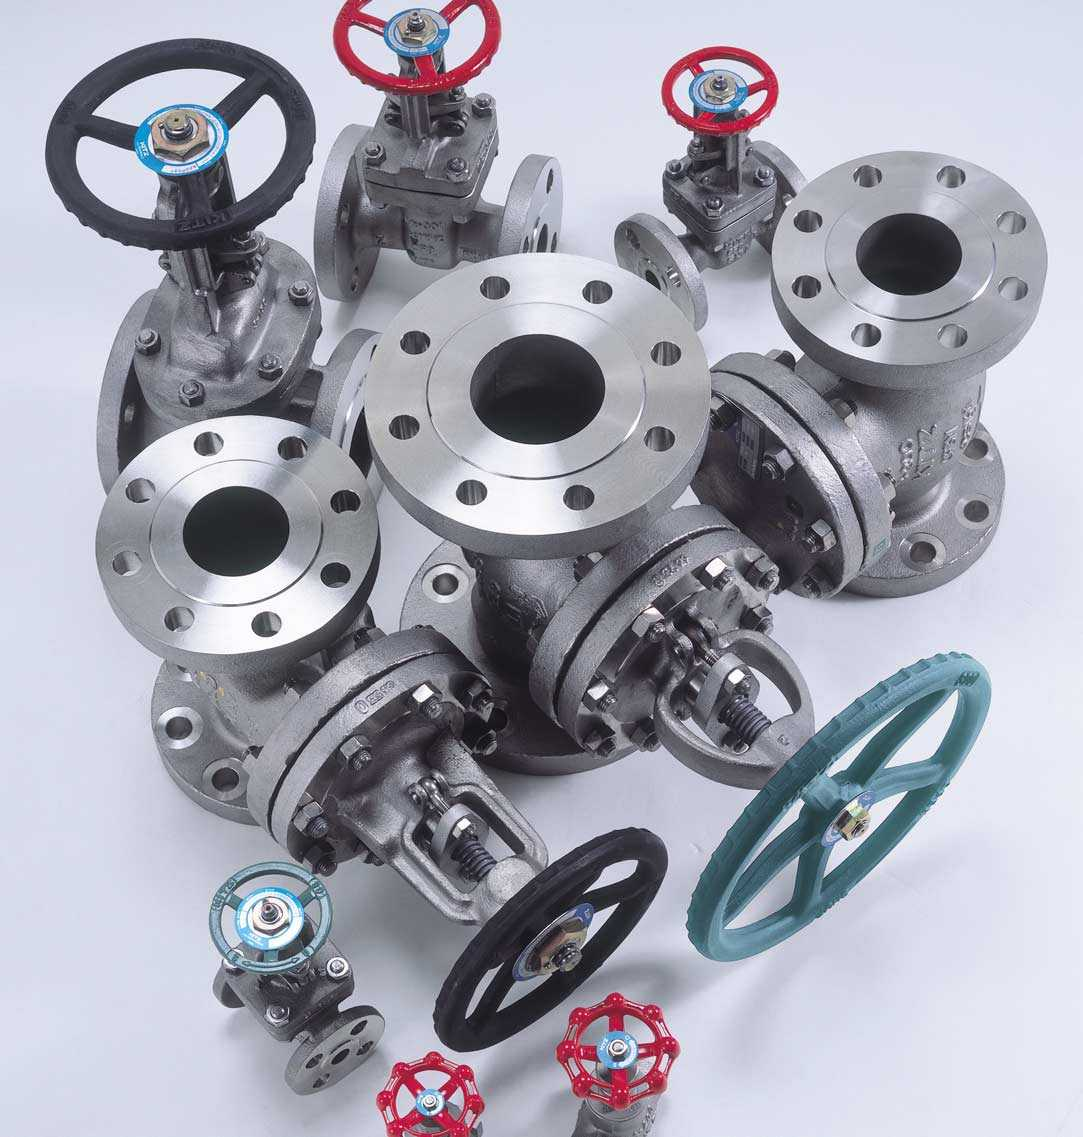 Van cầu Ball Valves